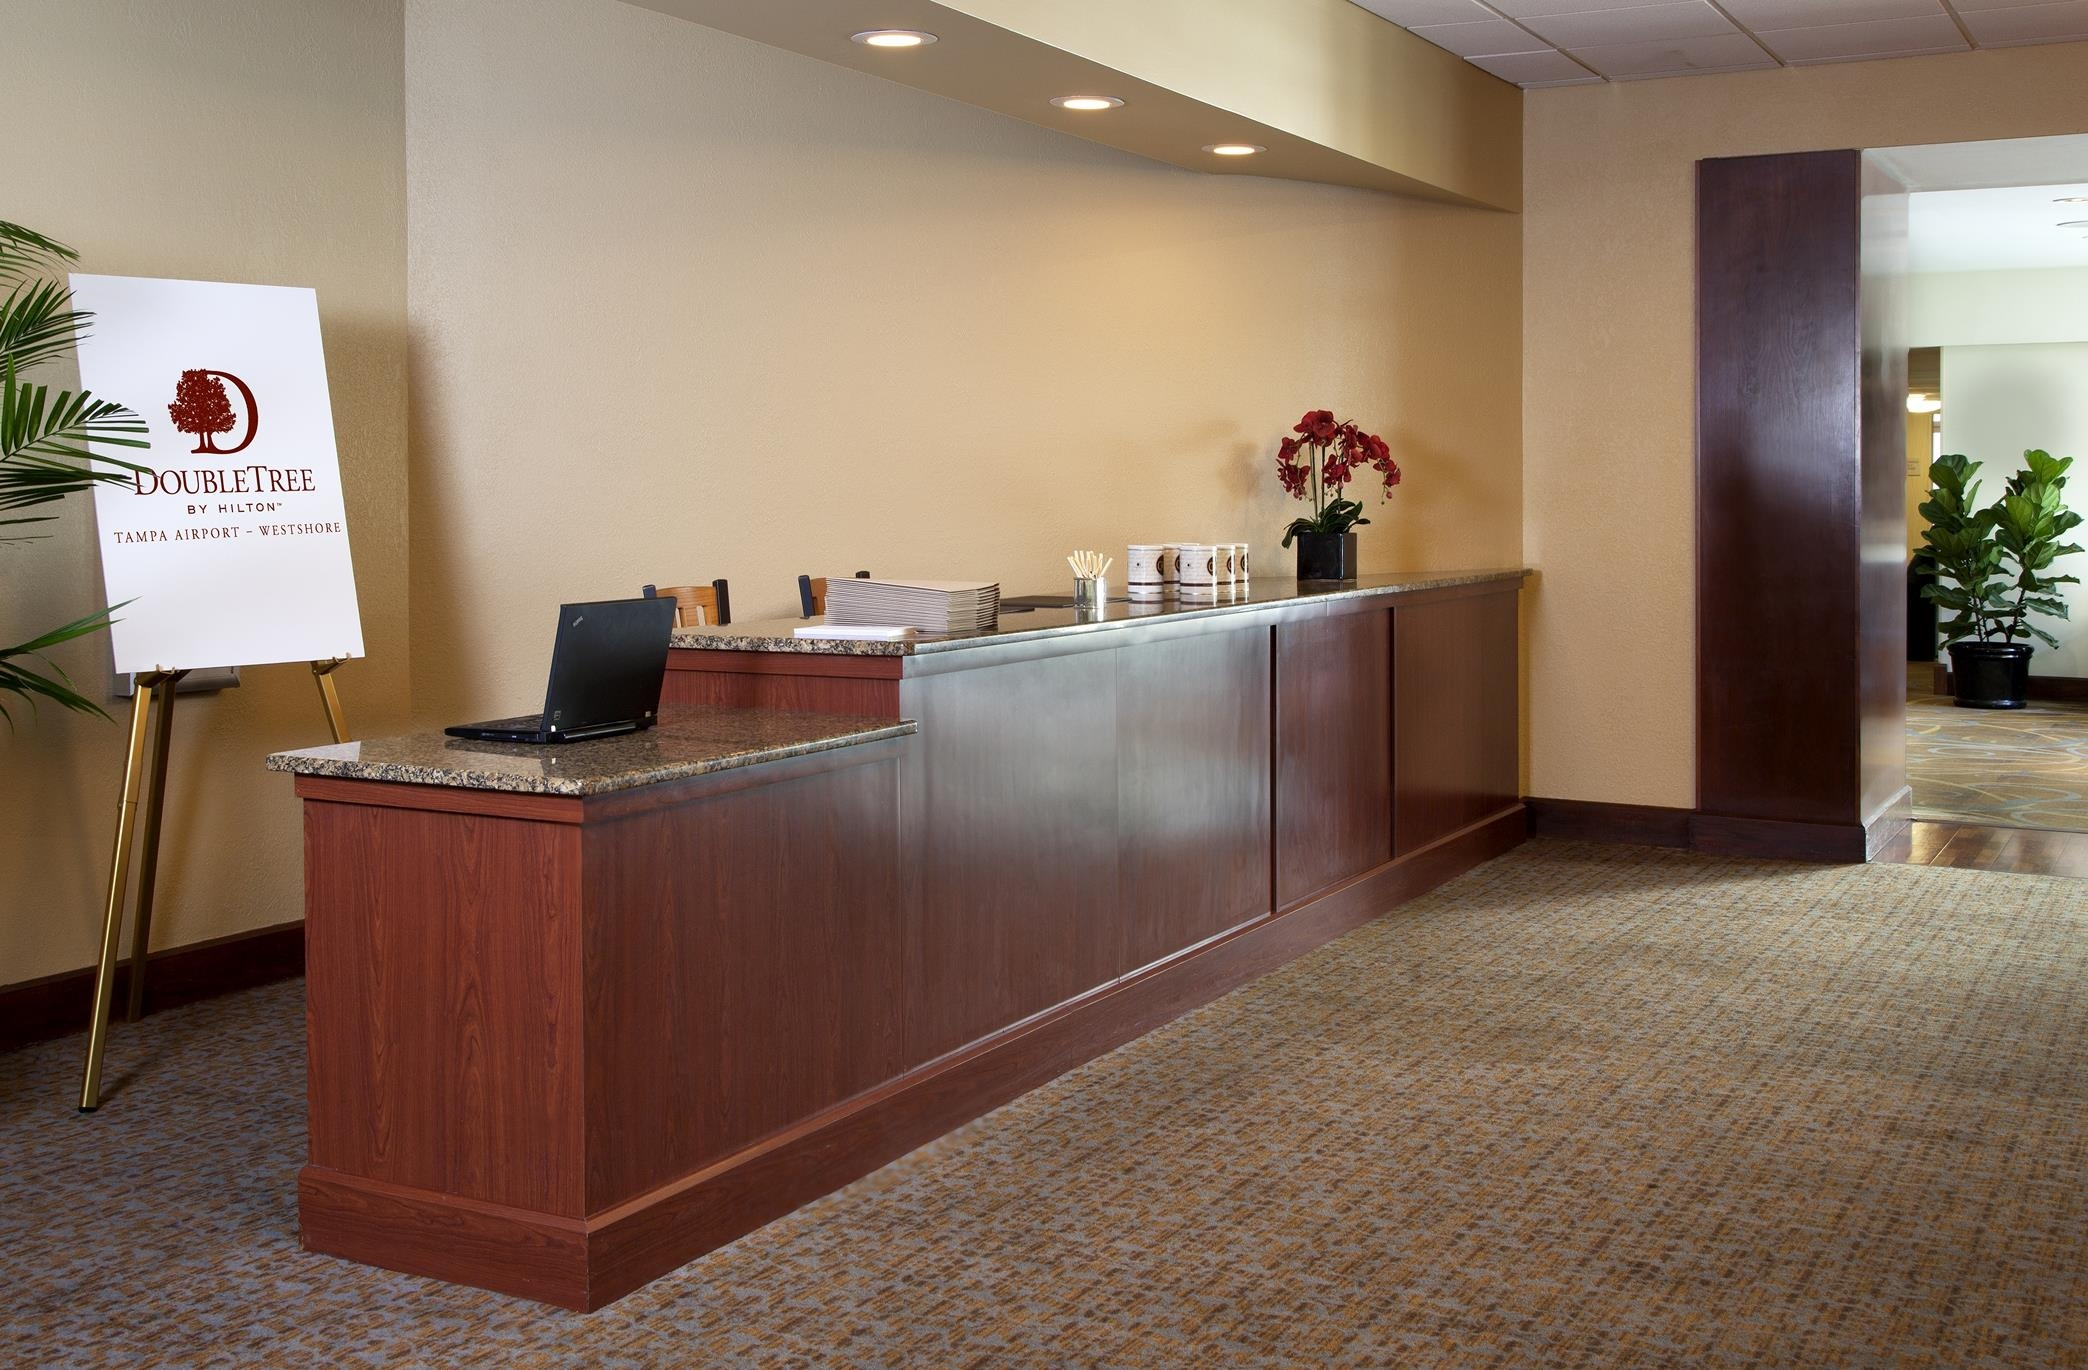 DoubleTree by Hilton Hotel Tampa Airport - Westshore image 23